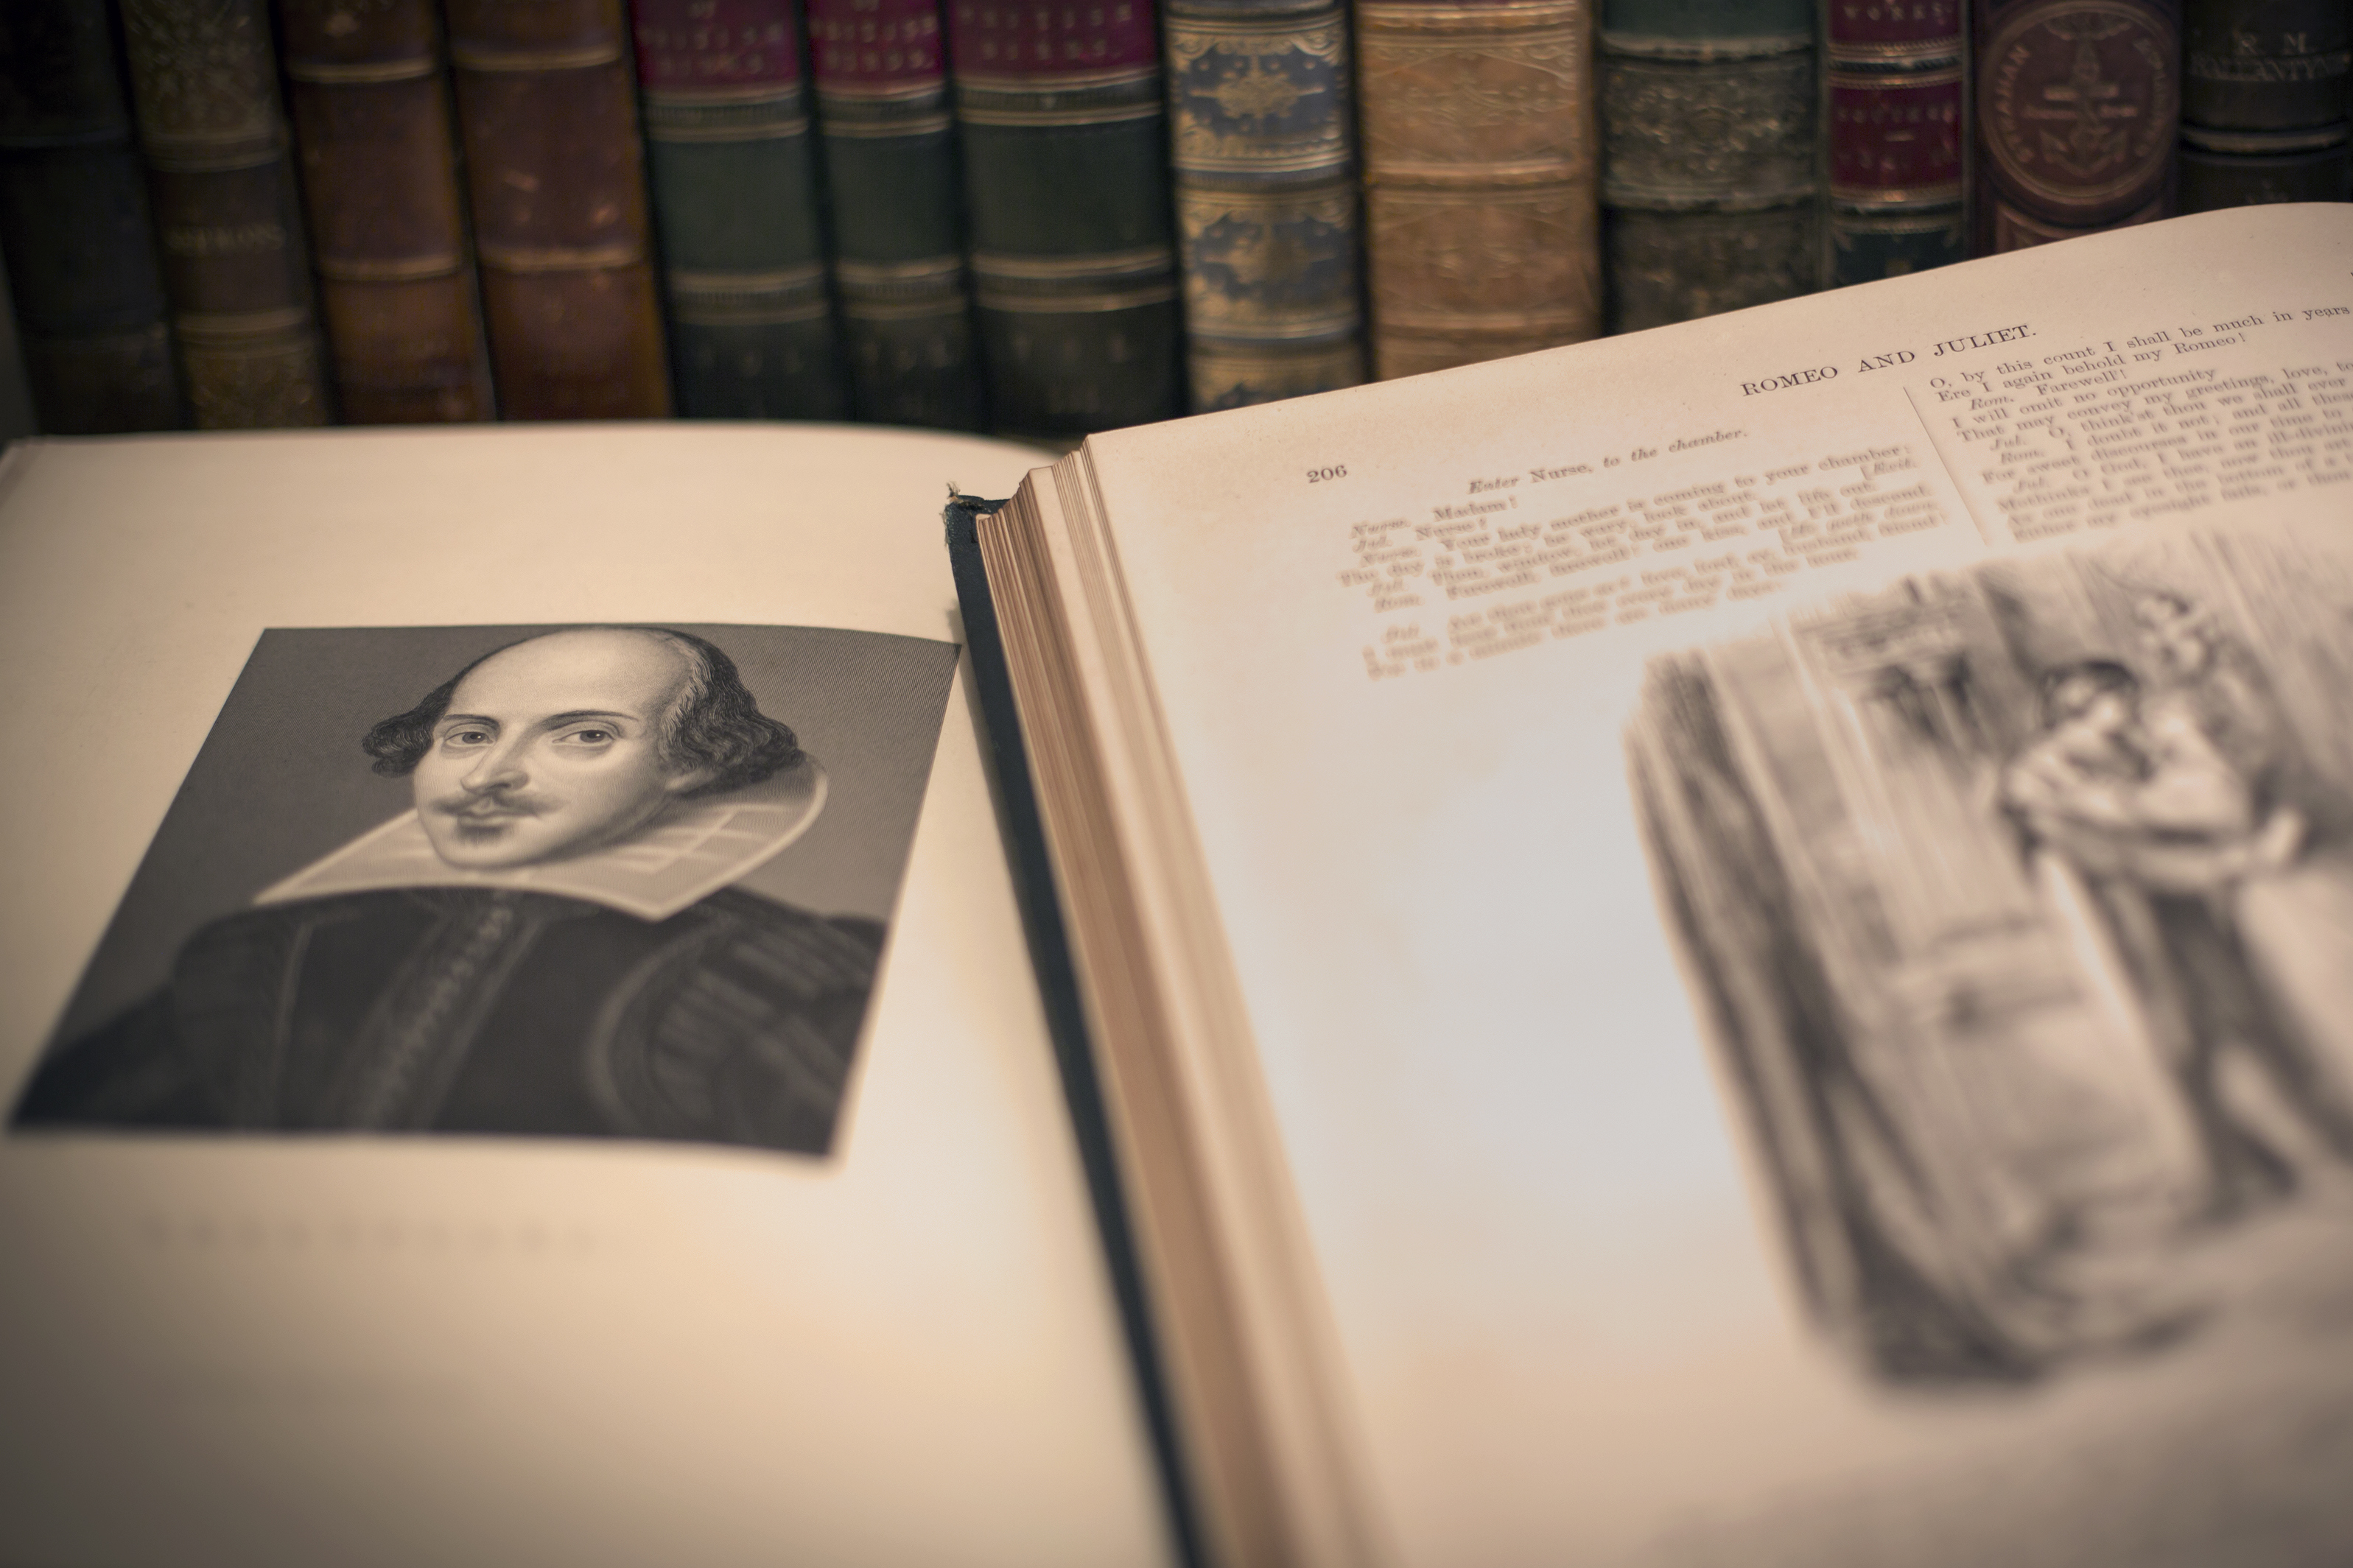 william shakespeare essay his life william shakespeare born apr  william shakespeare born apr com credit andrew howe getty images national treasure essay